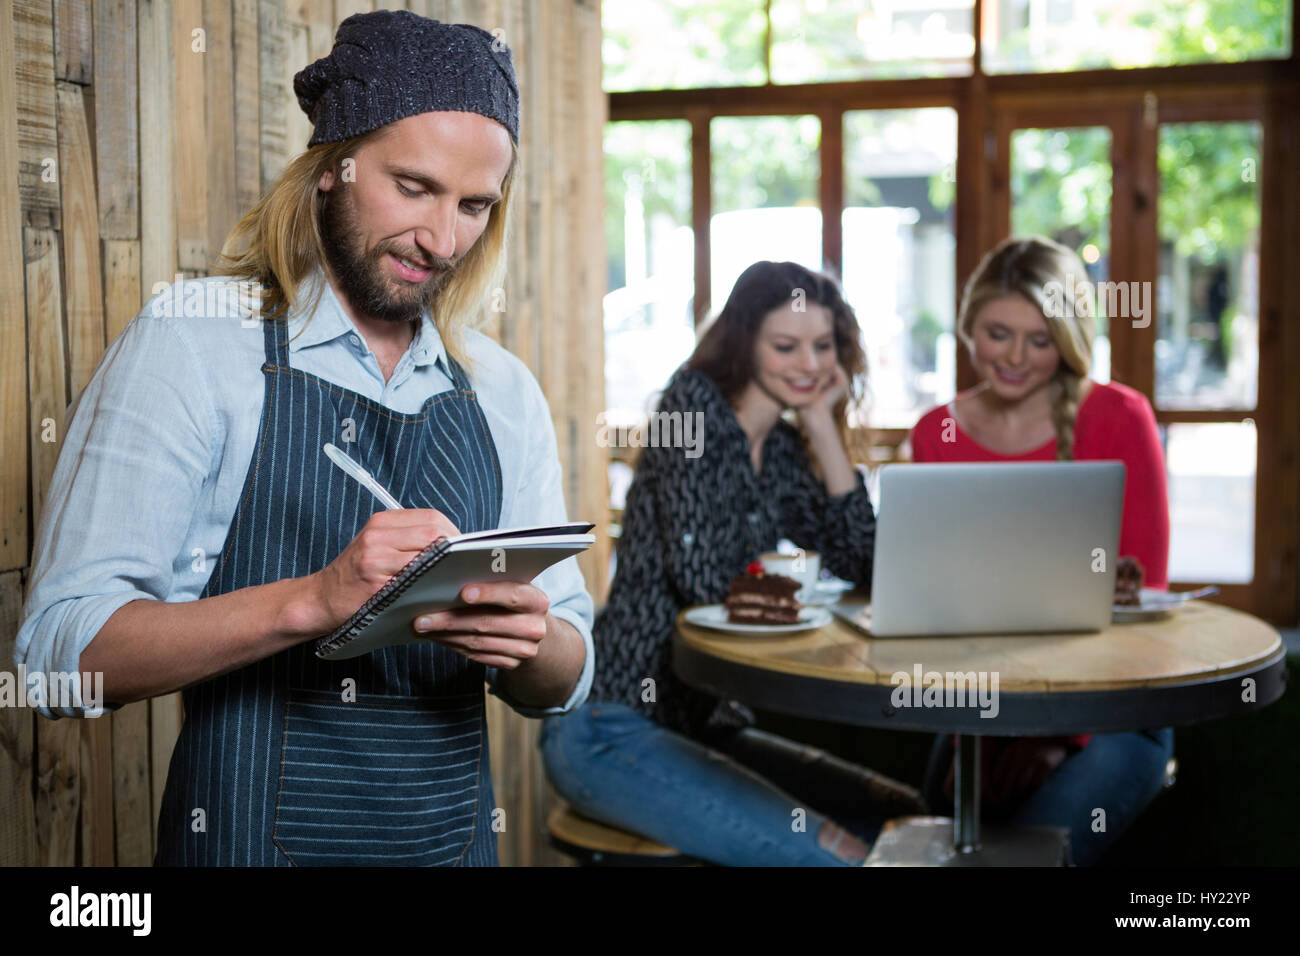 Male barista writing orders with female customers in background at coffee shop - Stock Image